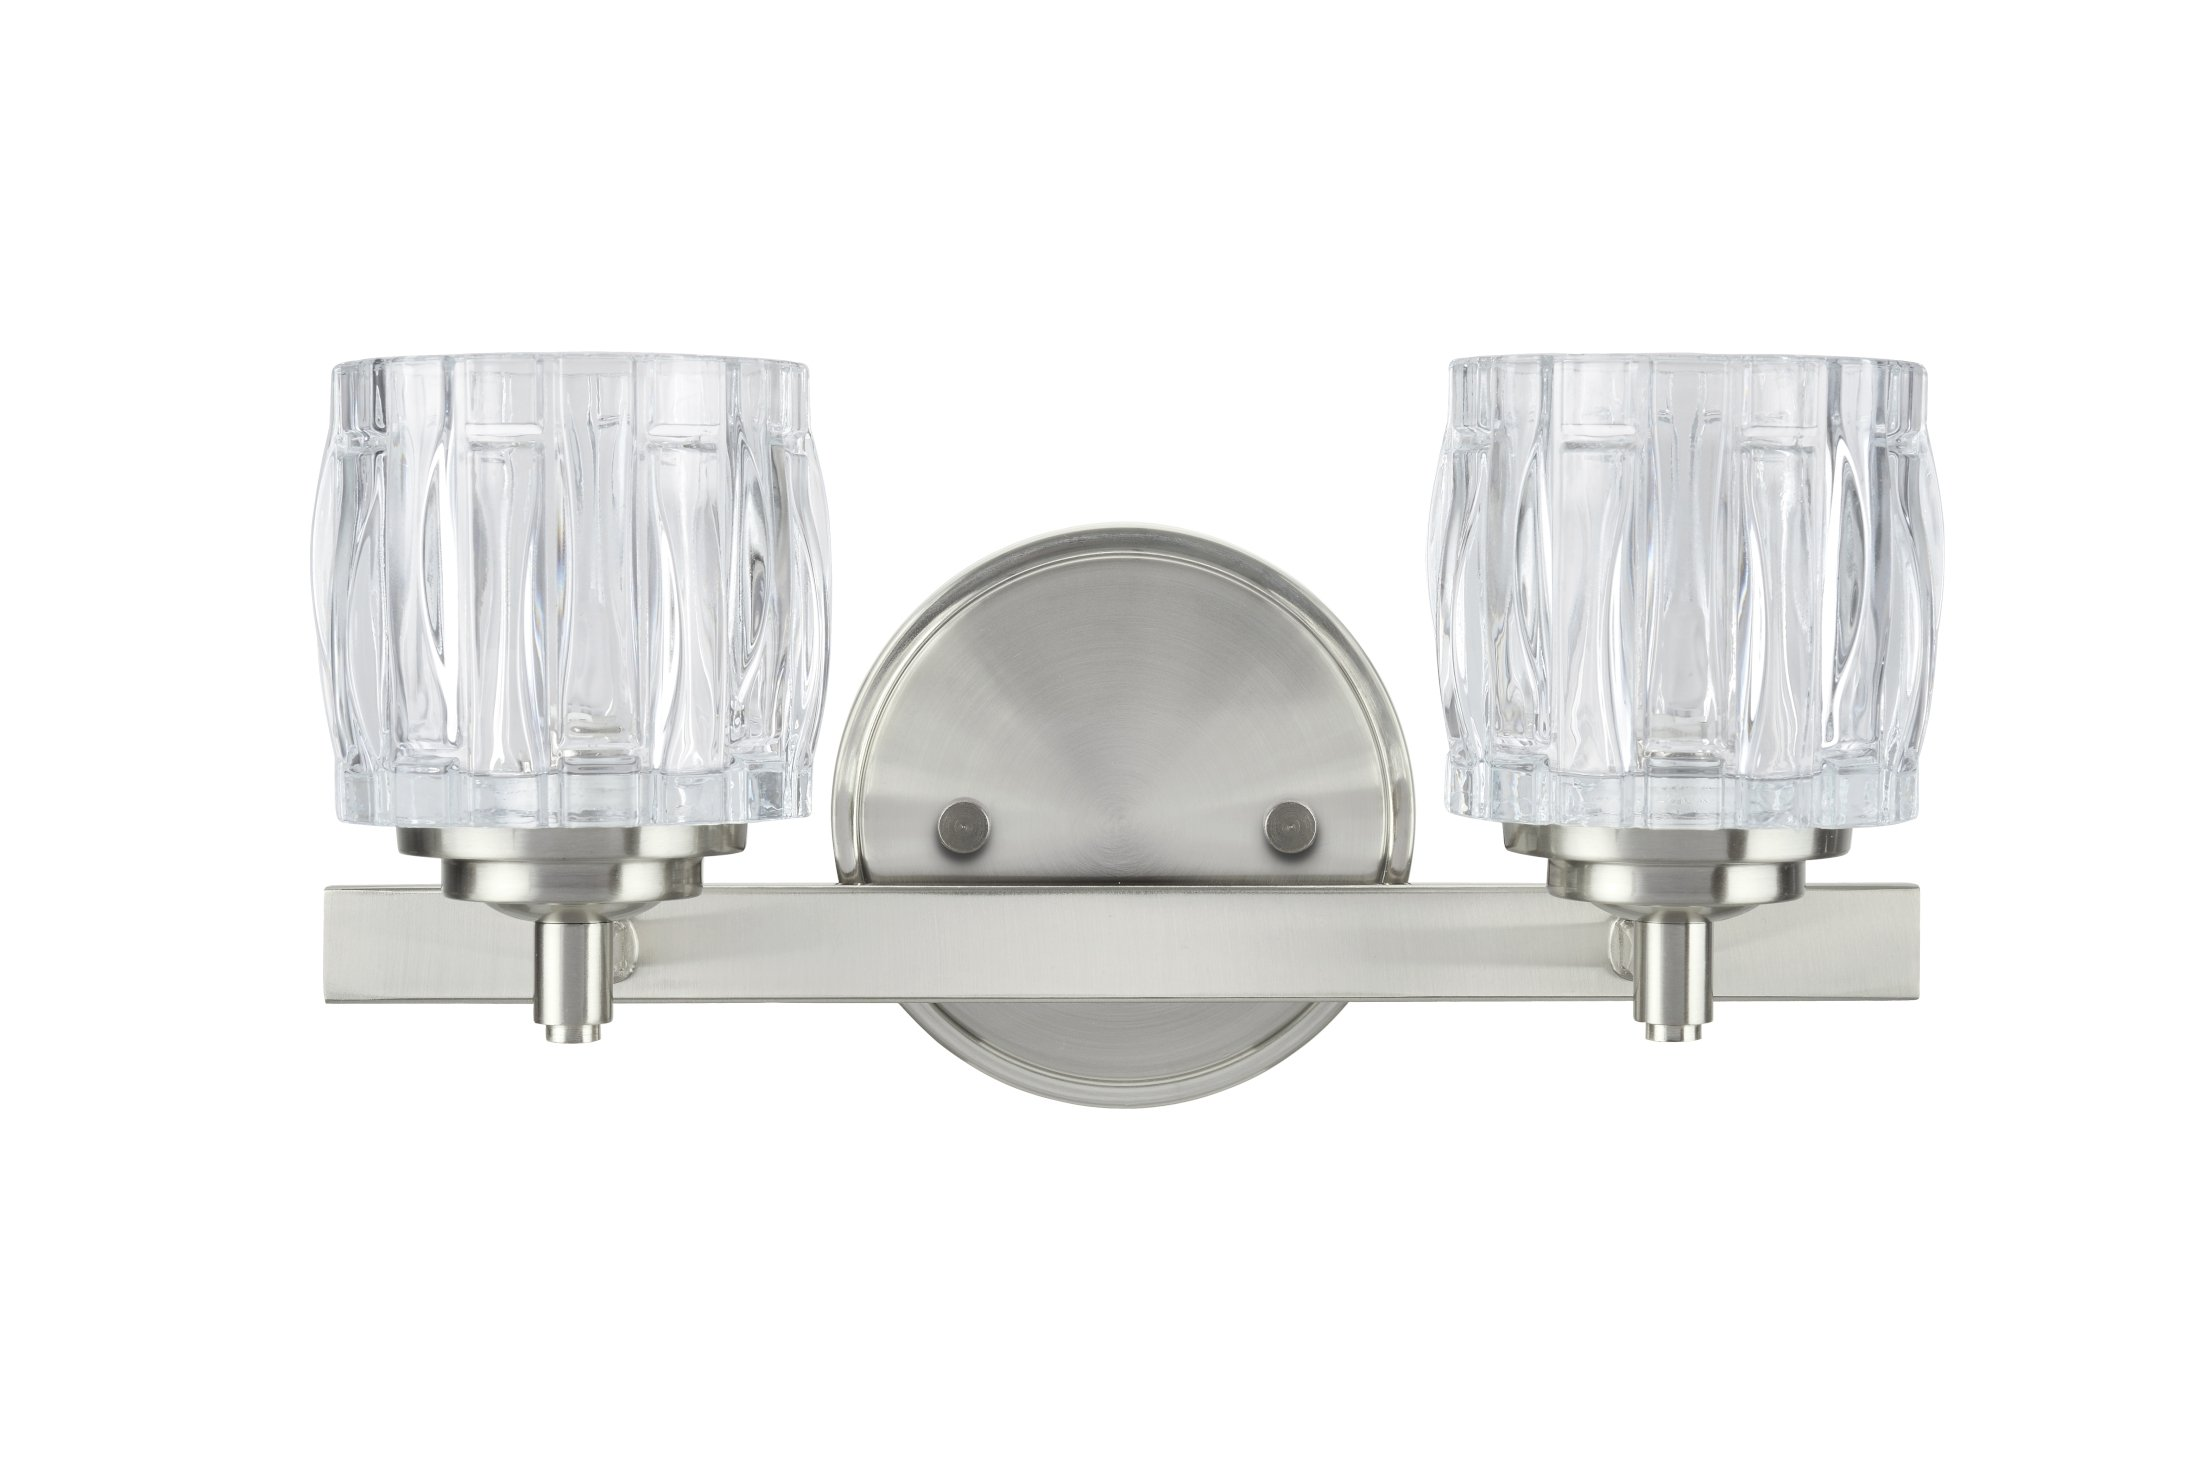 Aspen Creative 62110 2 Metal Bathroom Vanity Wall Fixture, 13 1/4'' Wide, Transitional Design Clear Glass Shade 2, 2 LIGHT, Brushed Nickel